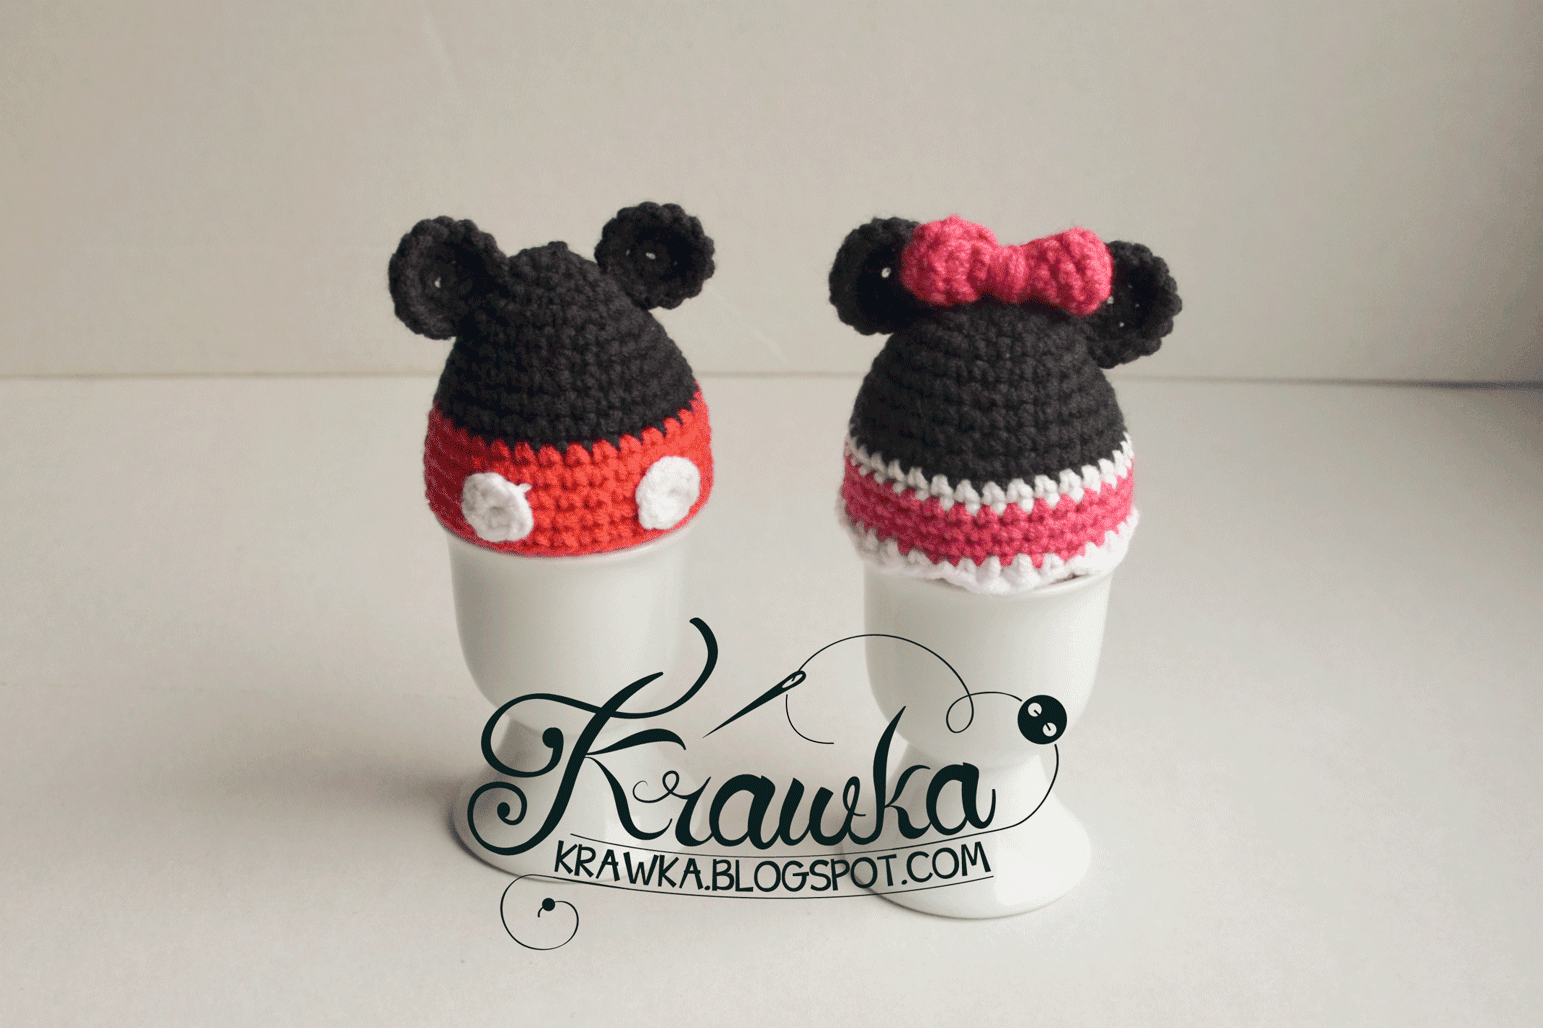 Krawka: Table decoration inspired by Mickey and Minnie Mouse - Easter egg cozies - Free crochet Pattern to make it yourself